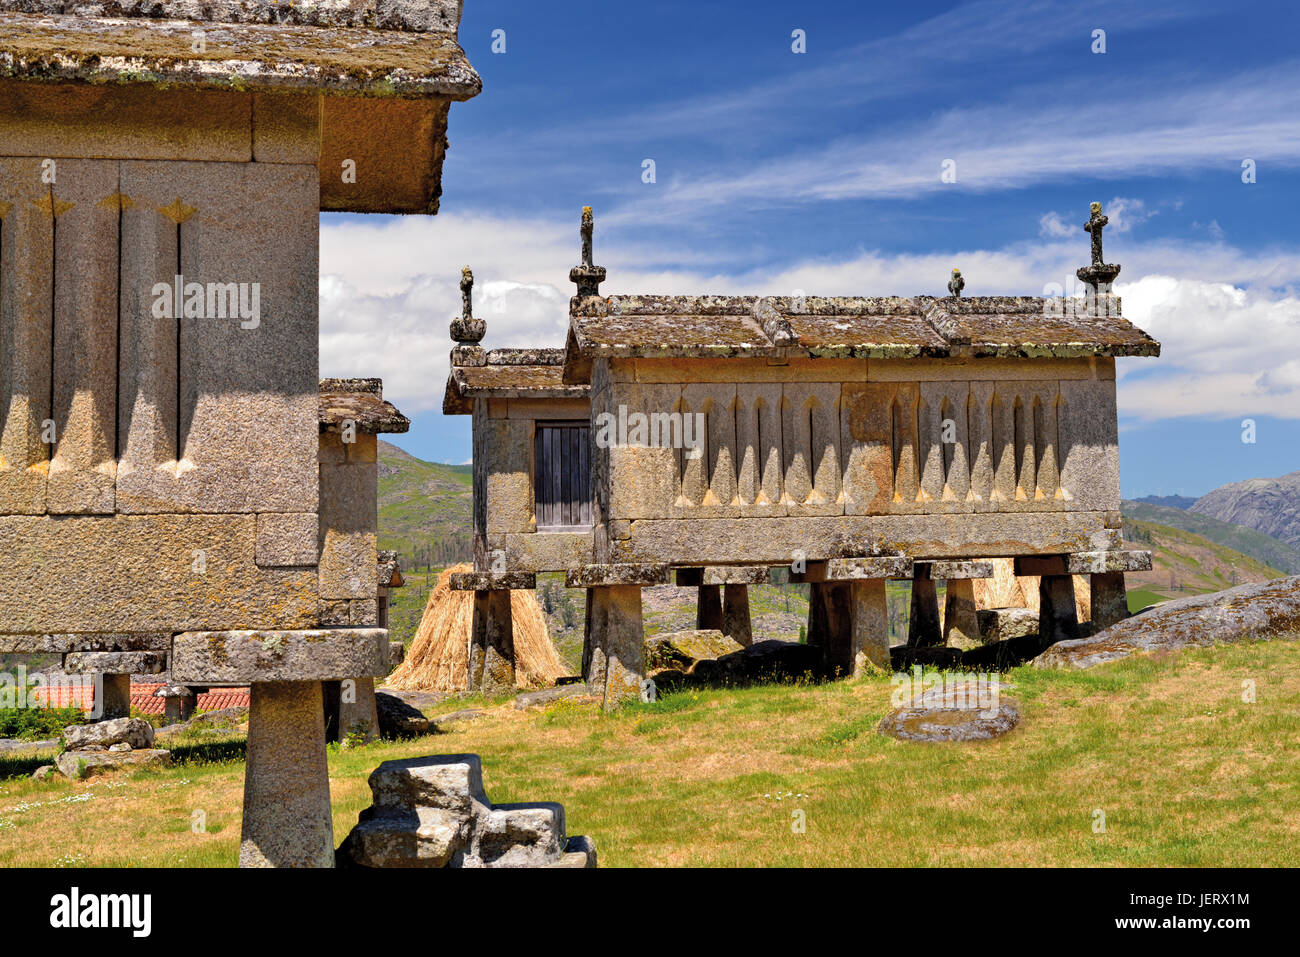 Portugal: Historic Corn storages in Lindoso Stock Photo